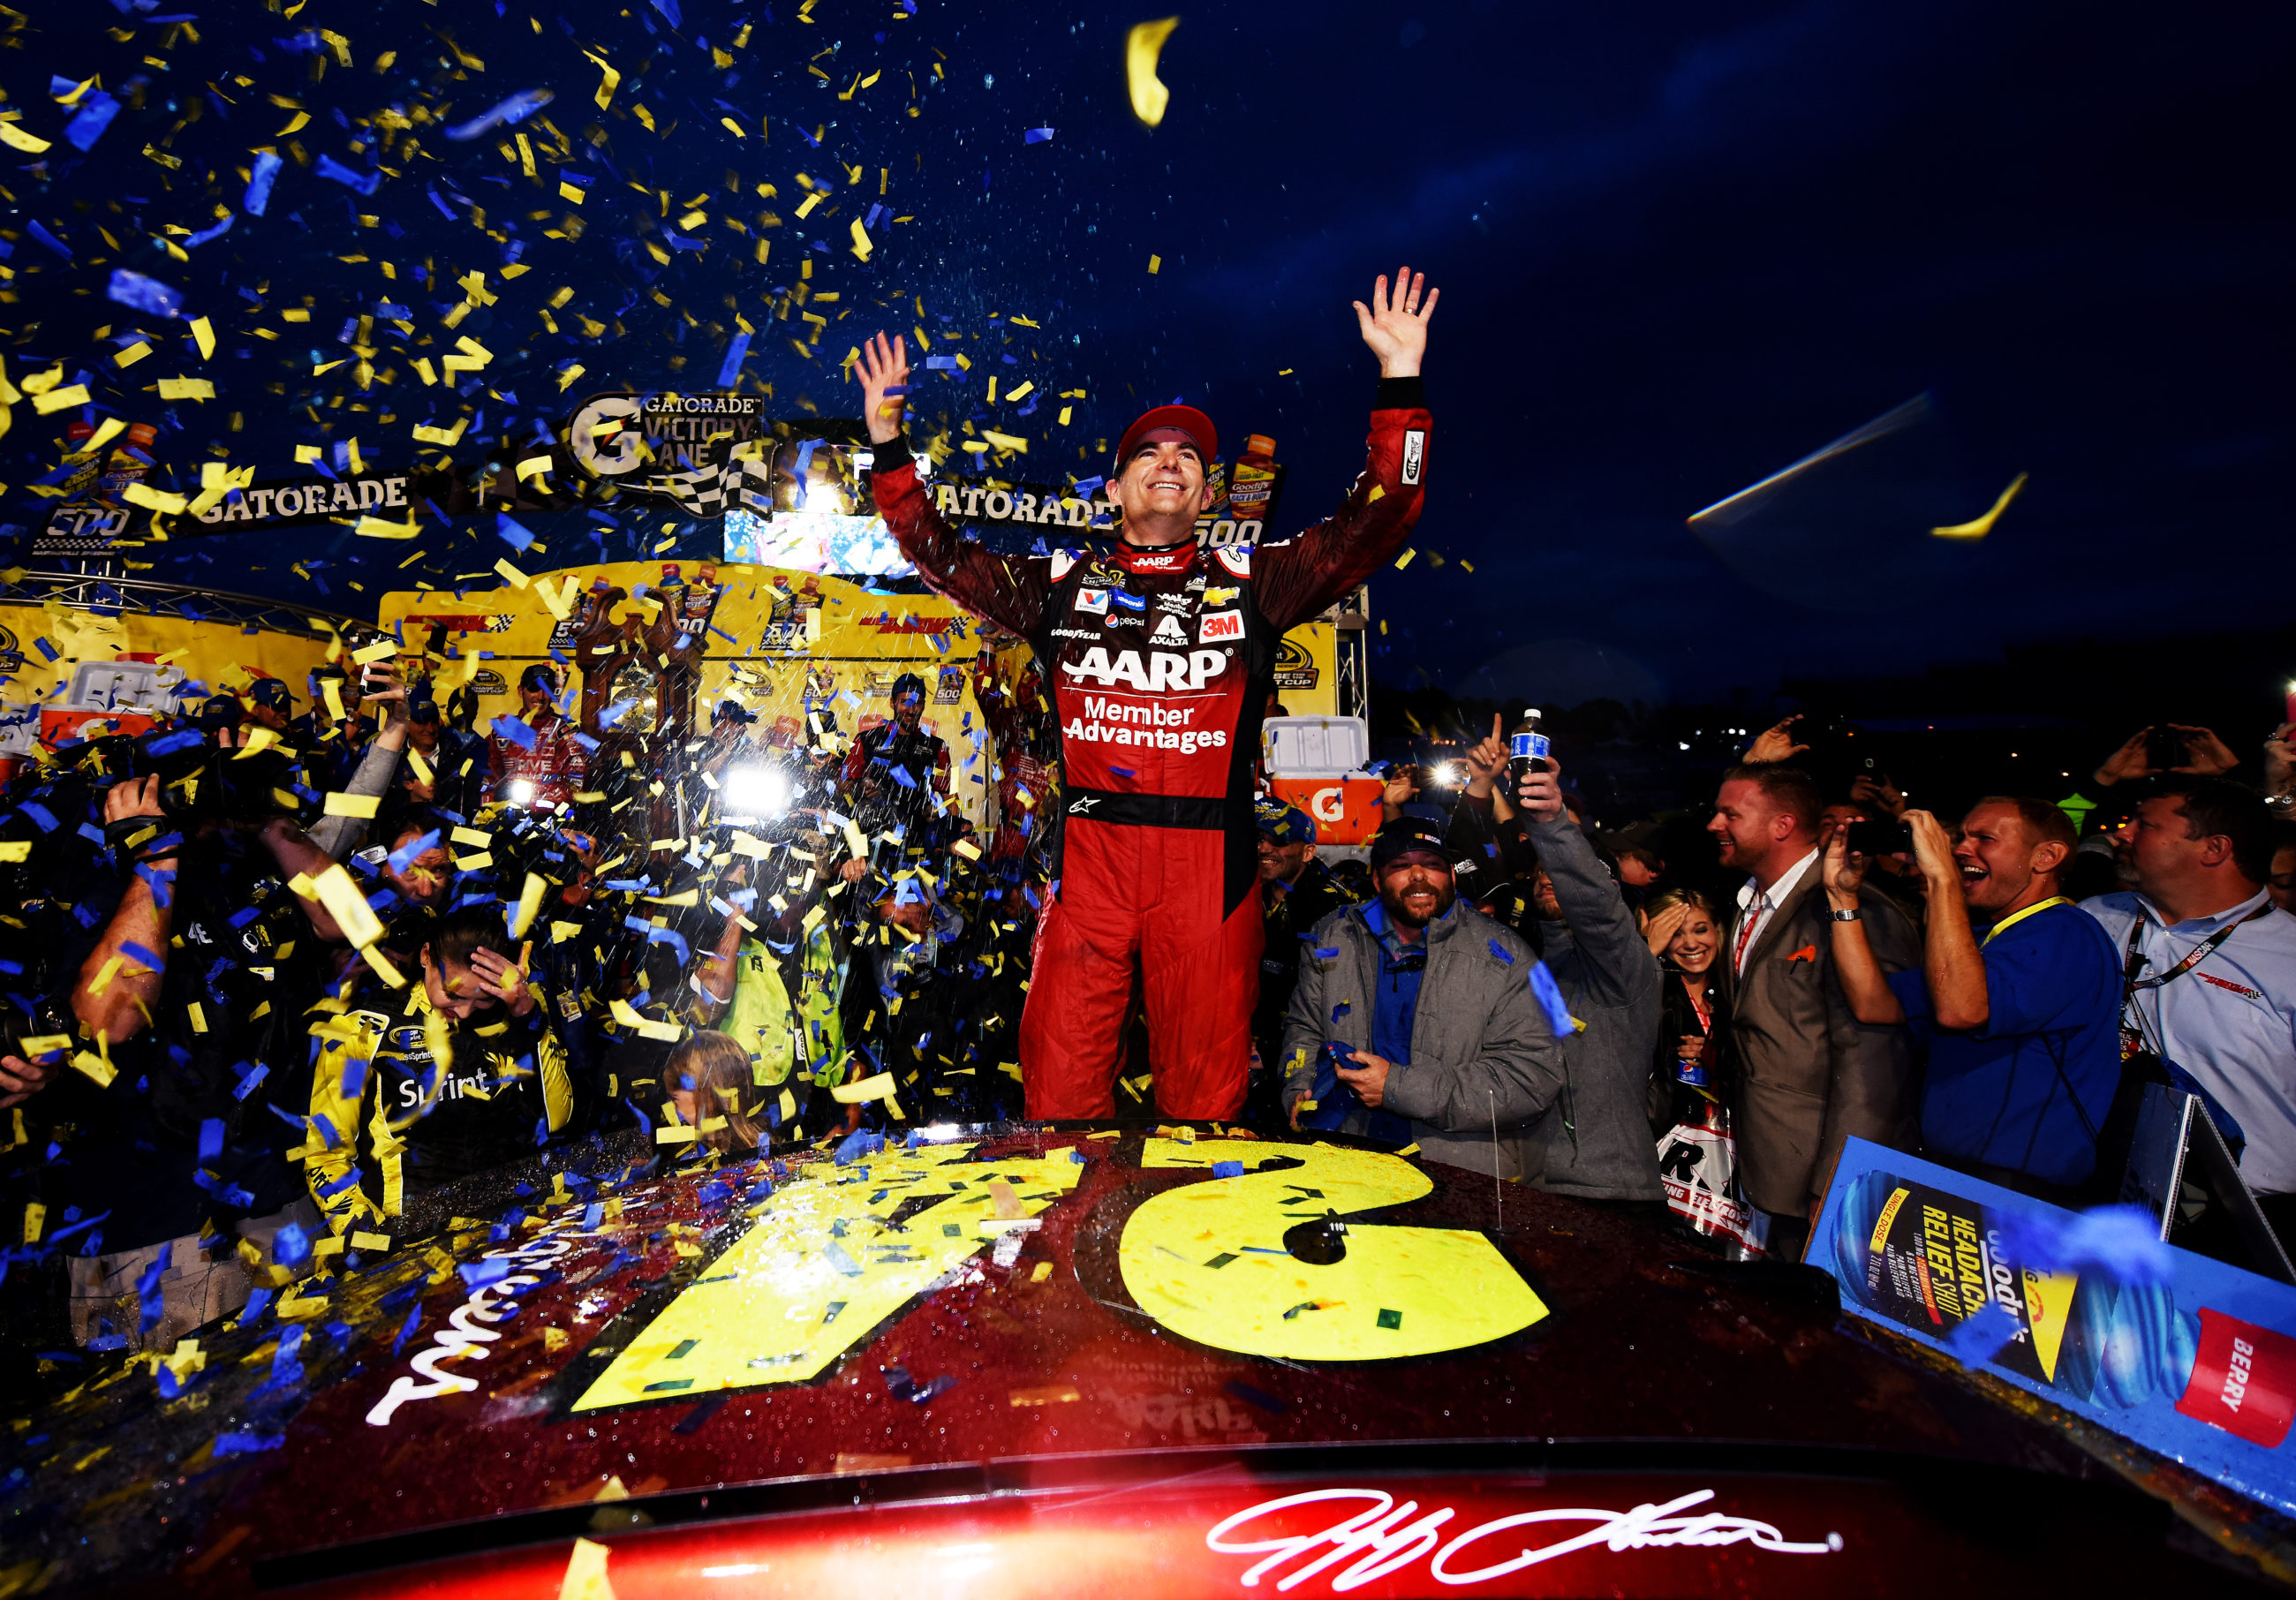 Jeff Gordon S Last Race Nascar Career Ends At